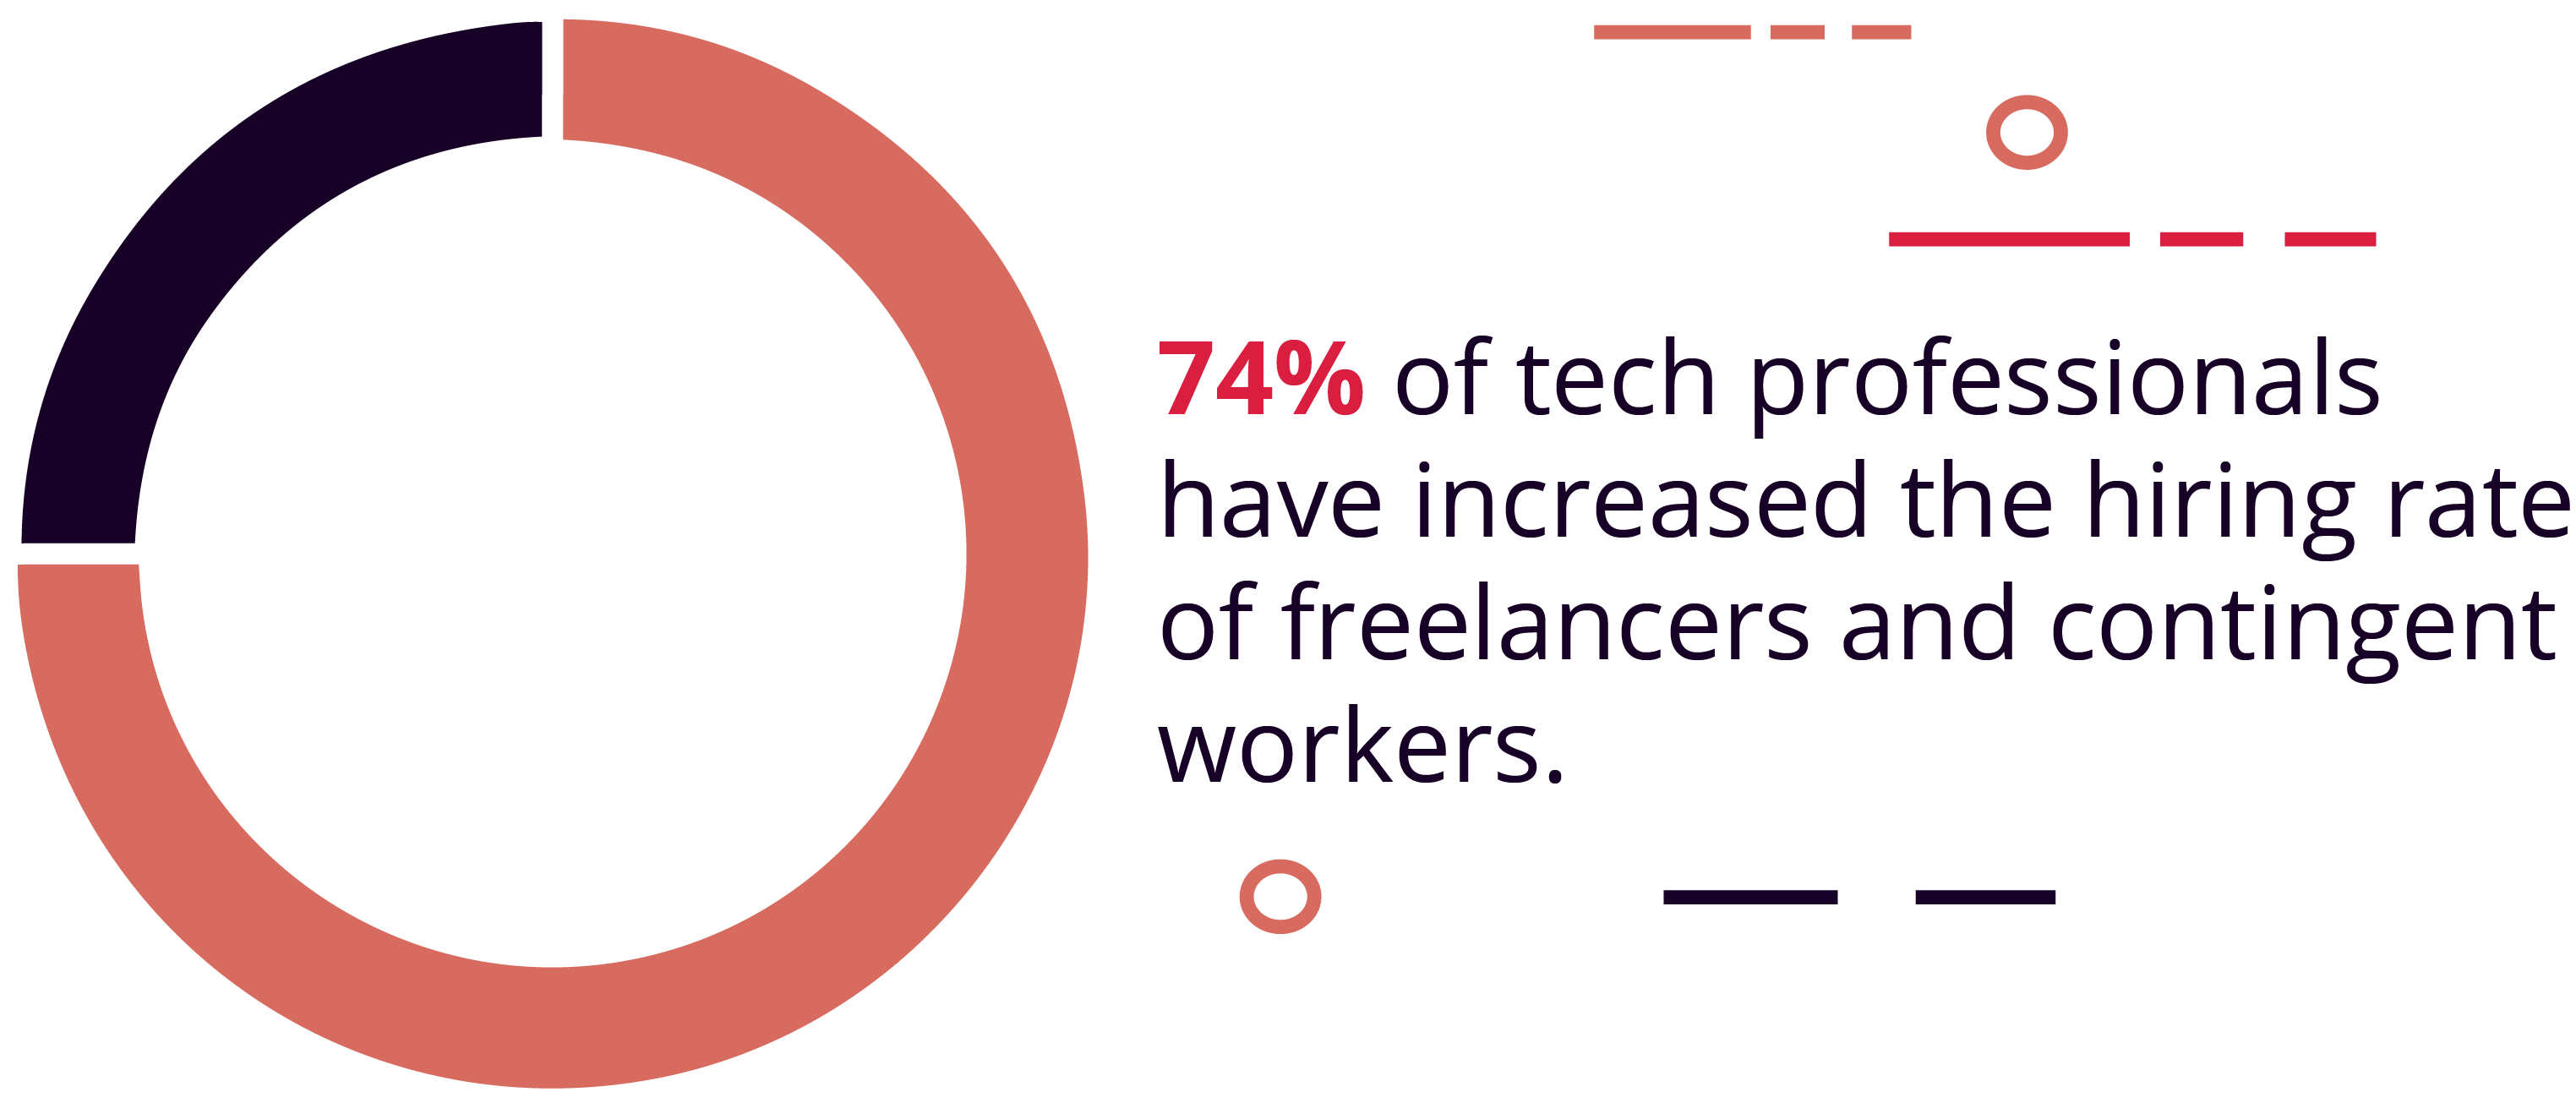 74% of tech professionals have increased the hiring rate of freelancers and contingent workers